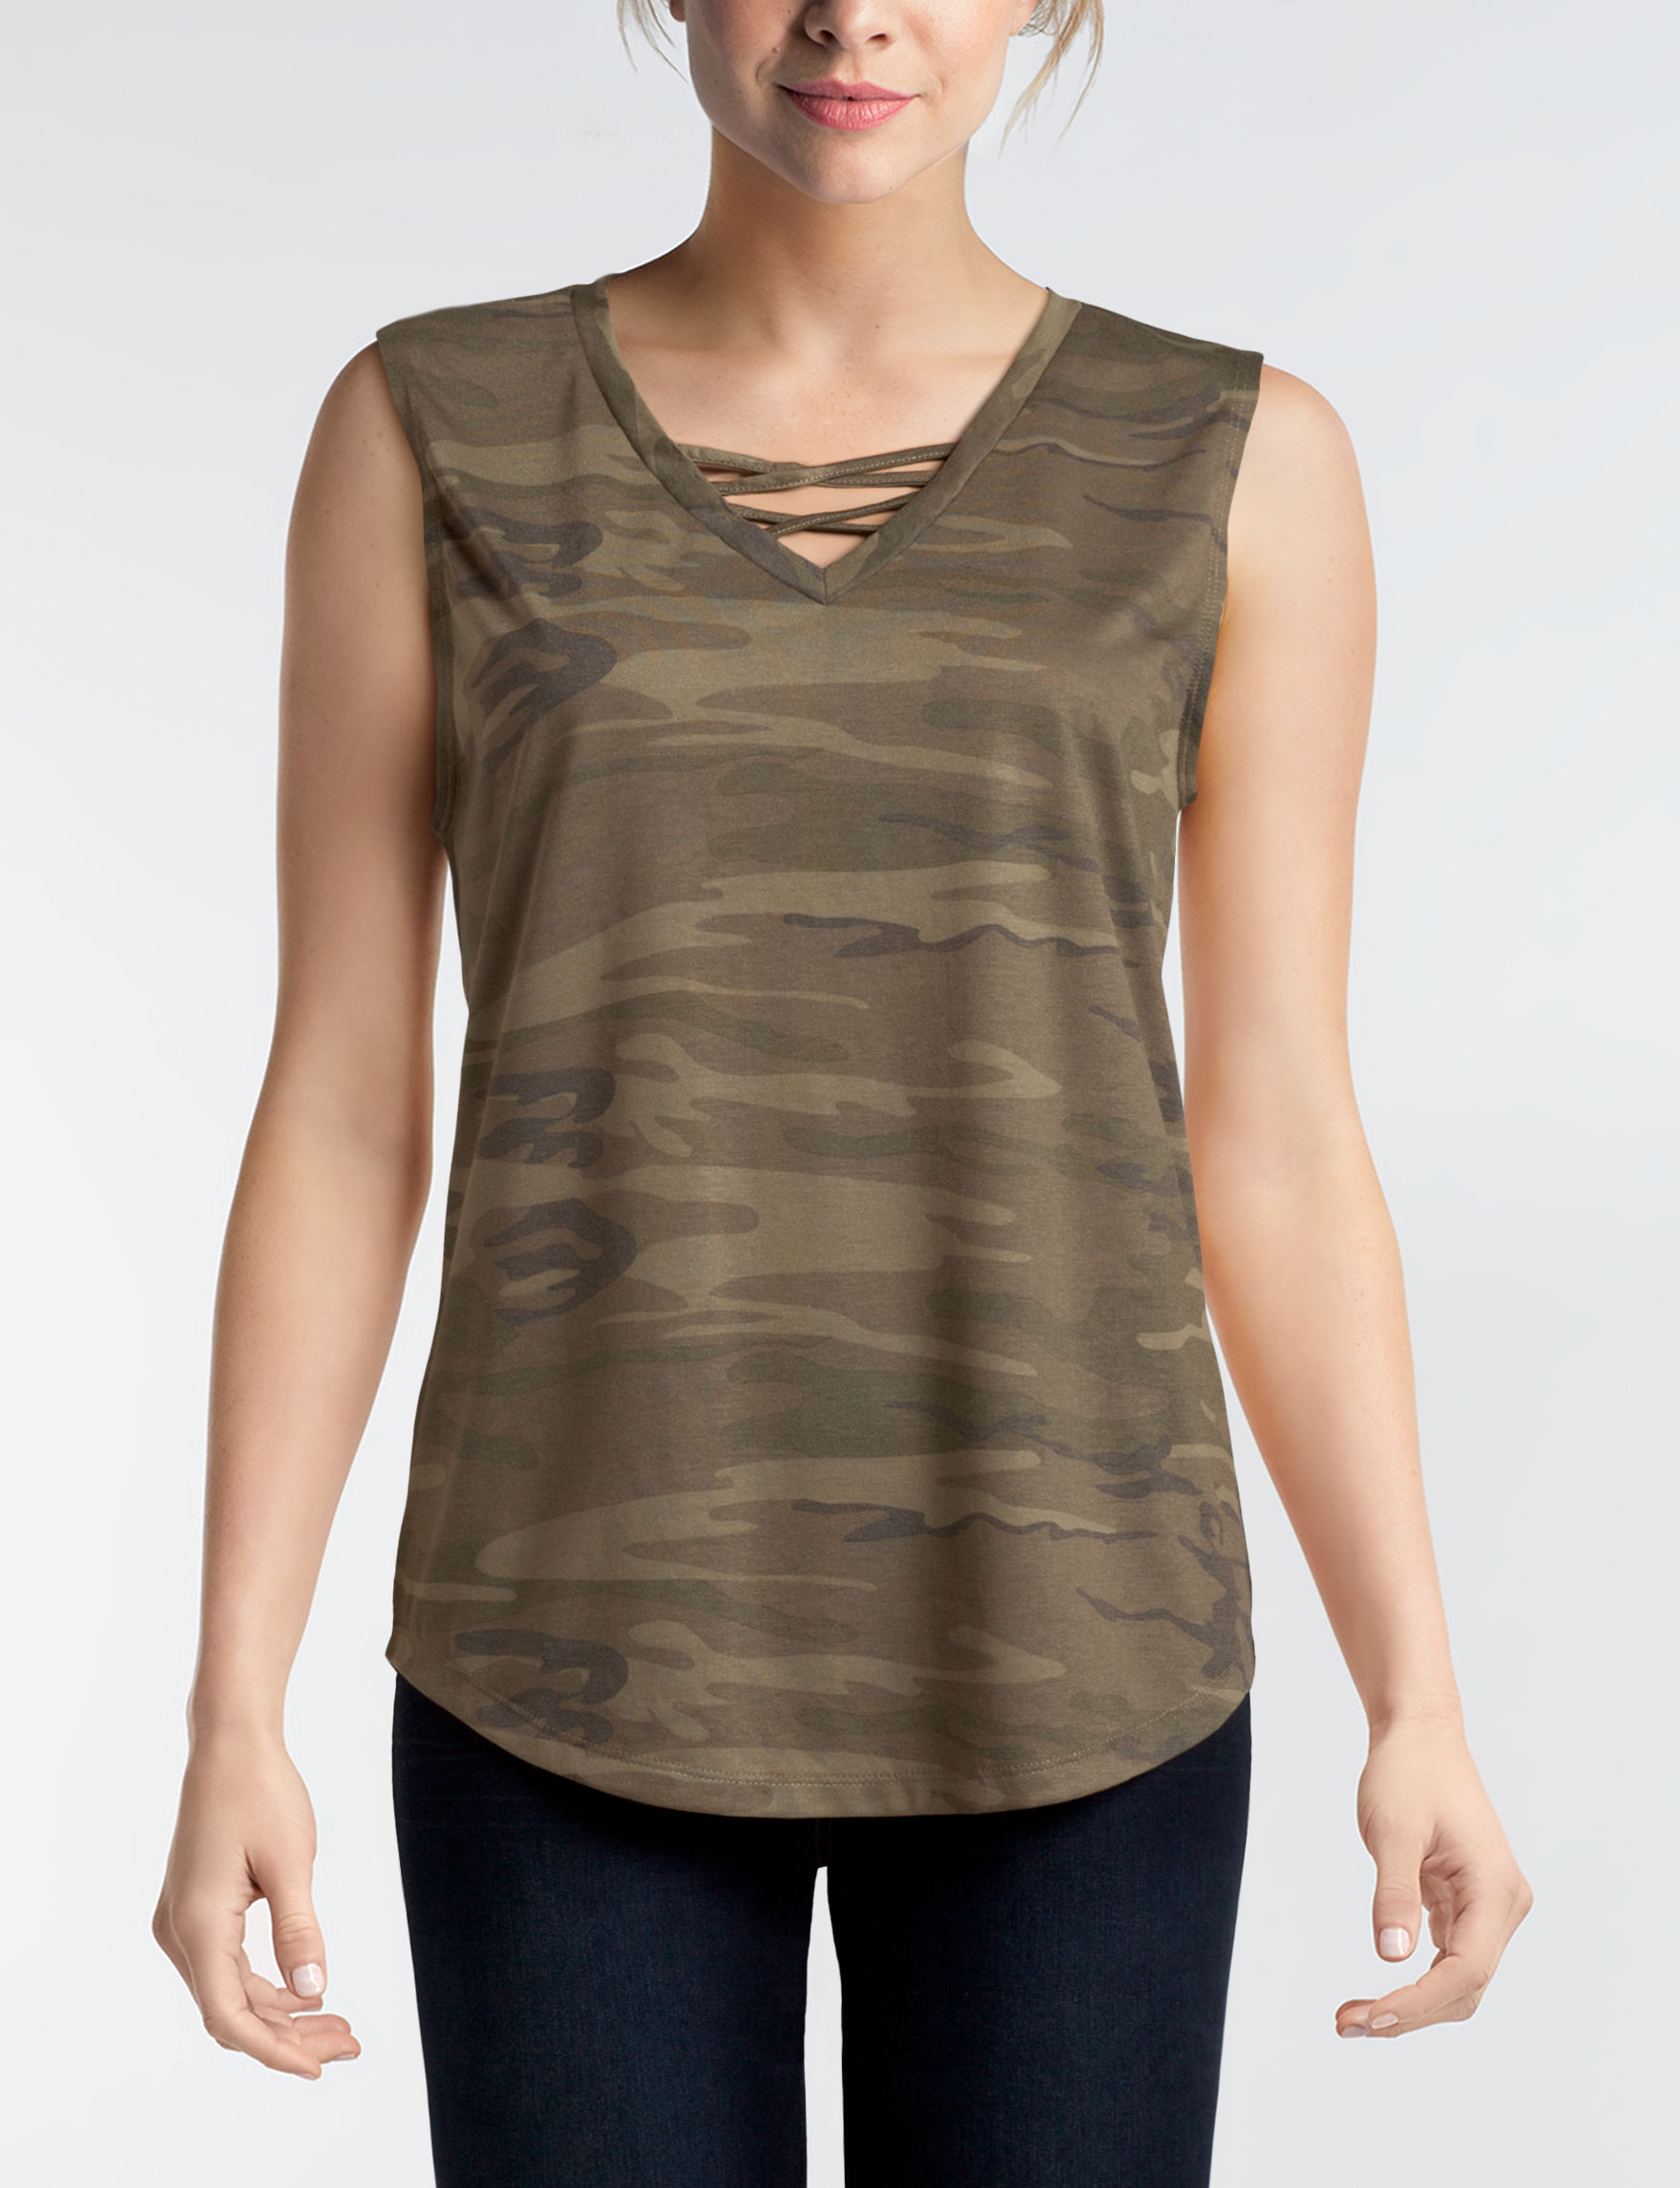 Wishful Park Camo Tees & Tanks